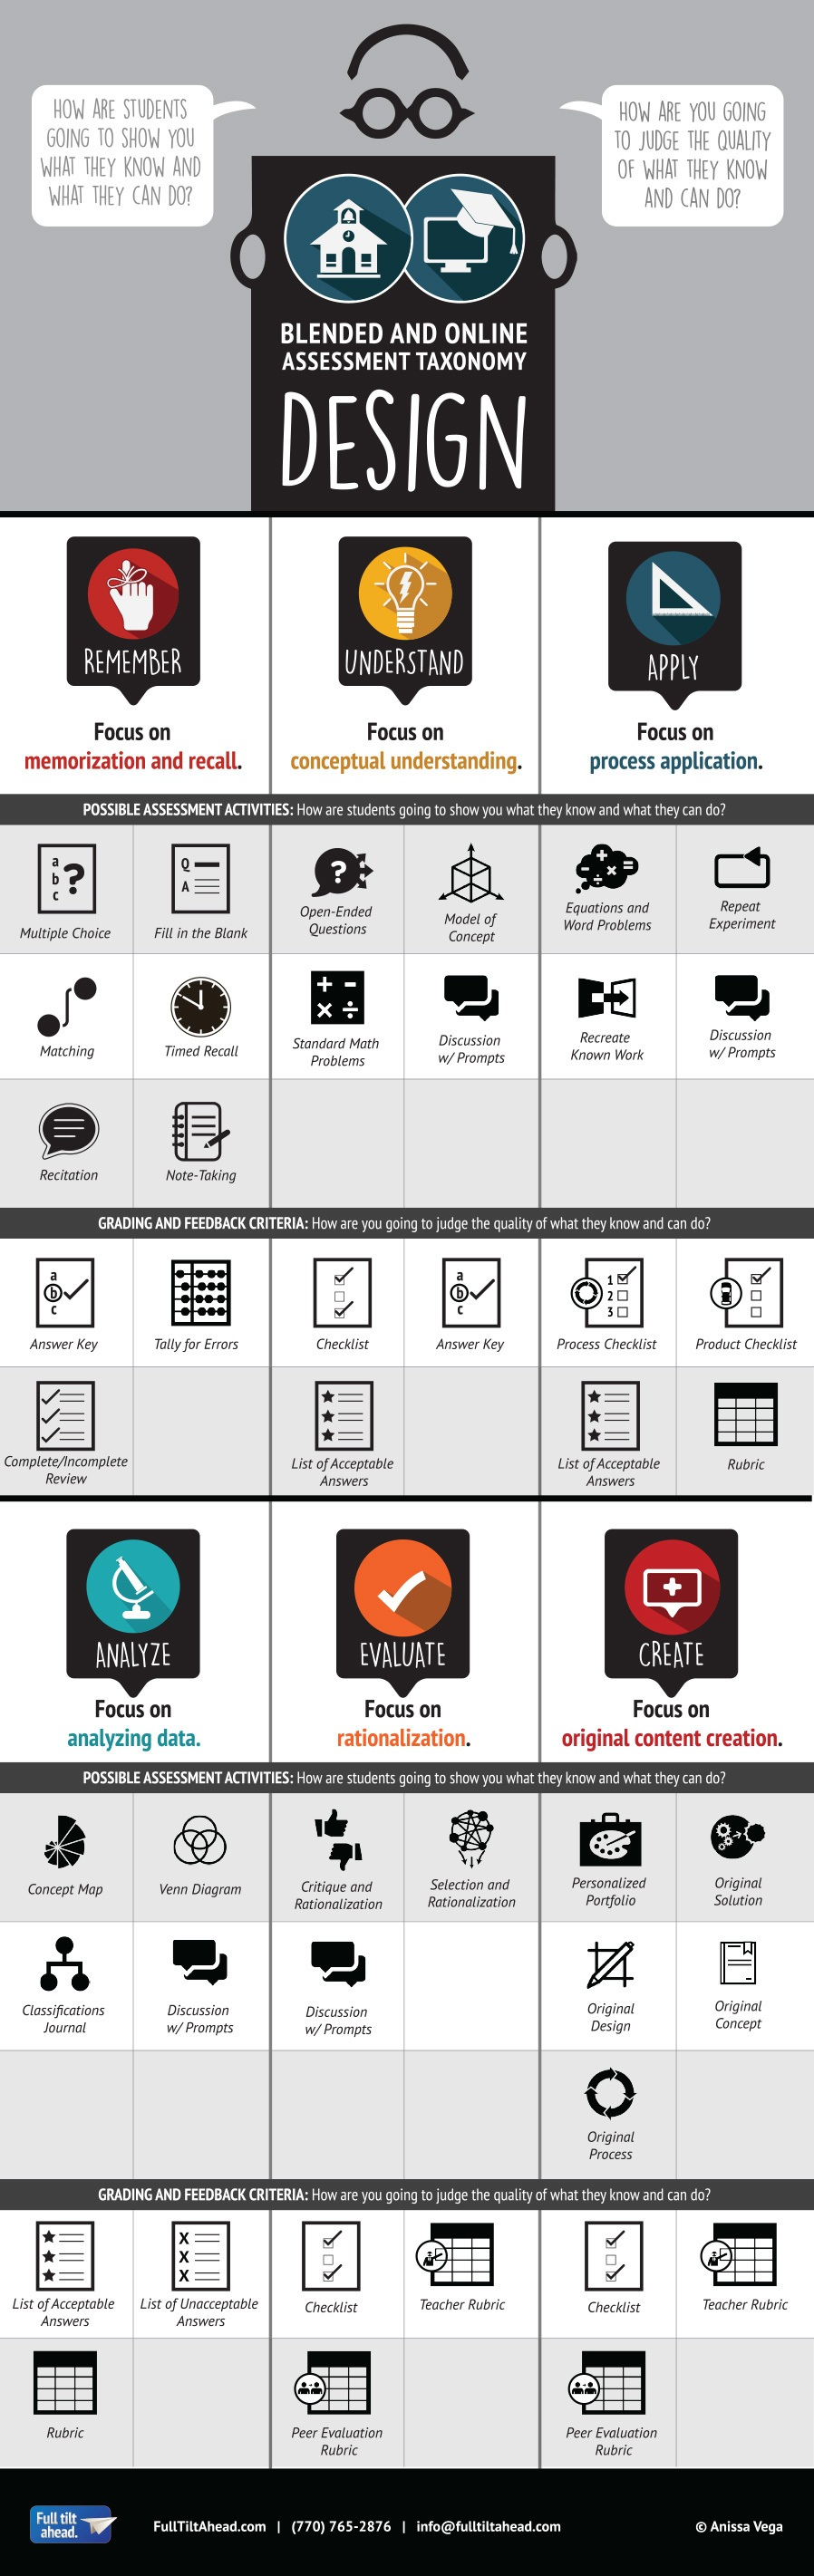 Blended and Online Assessment Taxonomy Infographic